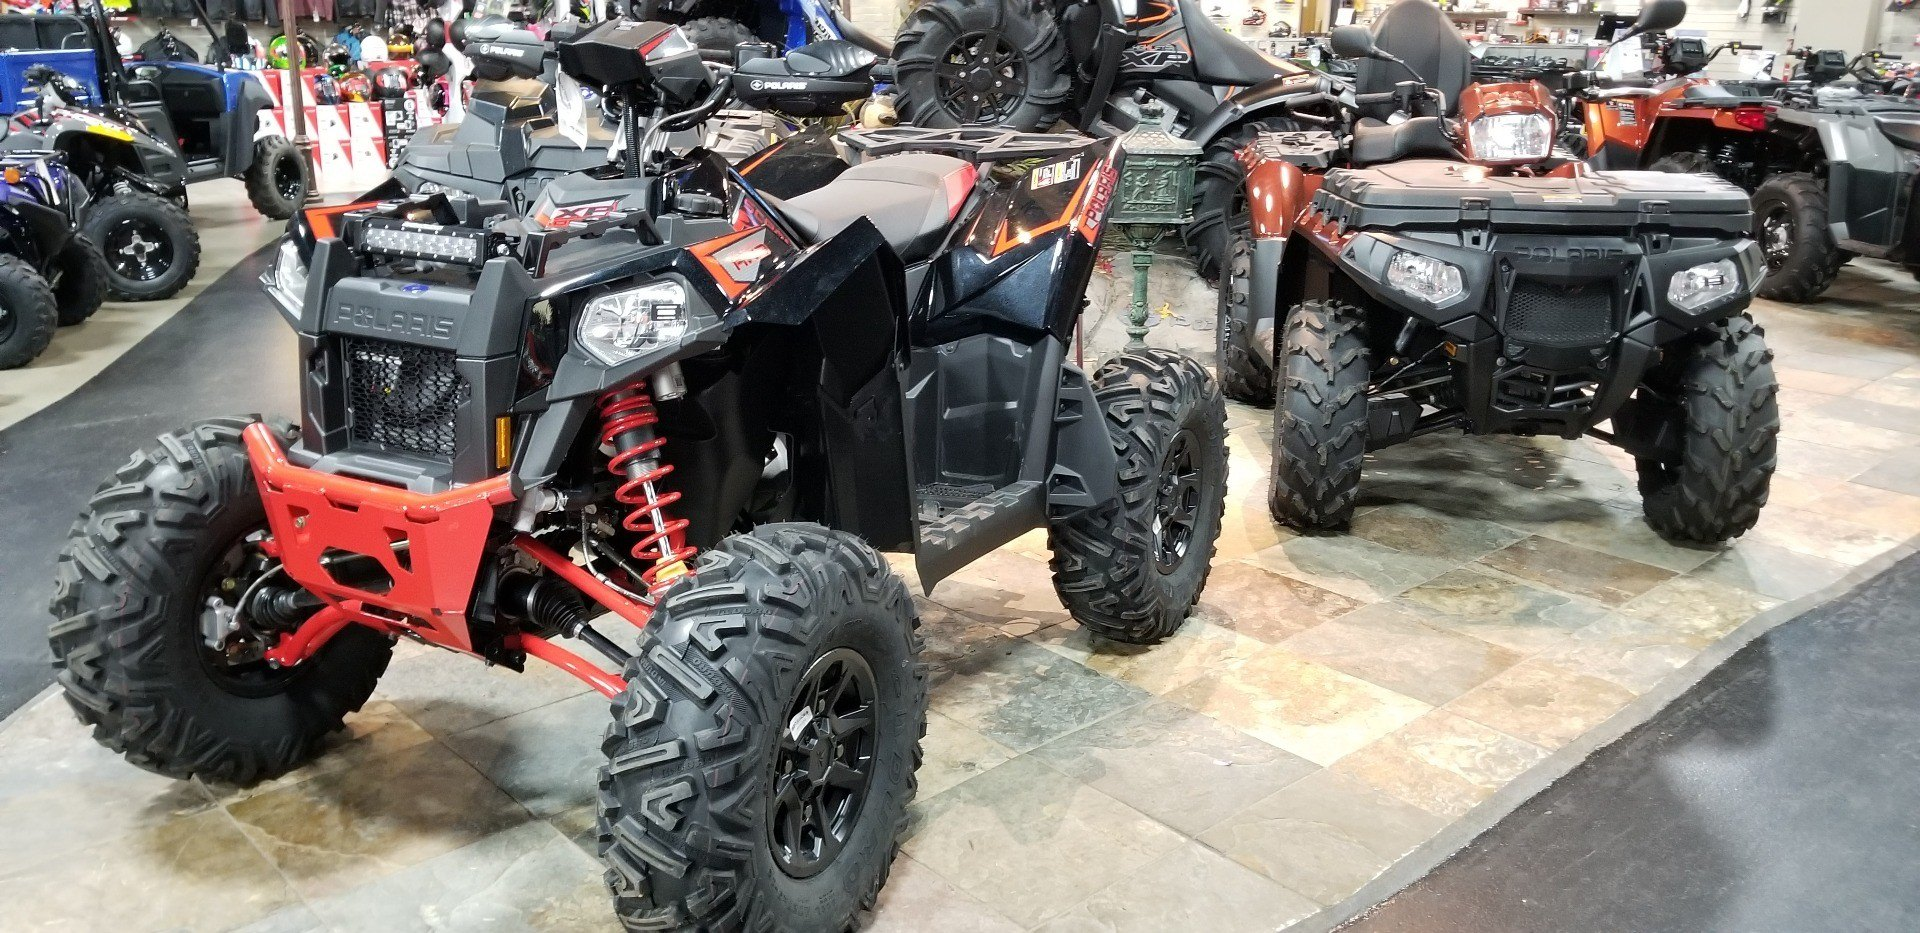 2020 Polaris Scrambler XP 1000 S in Dimondale, Michigan - Photo 8